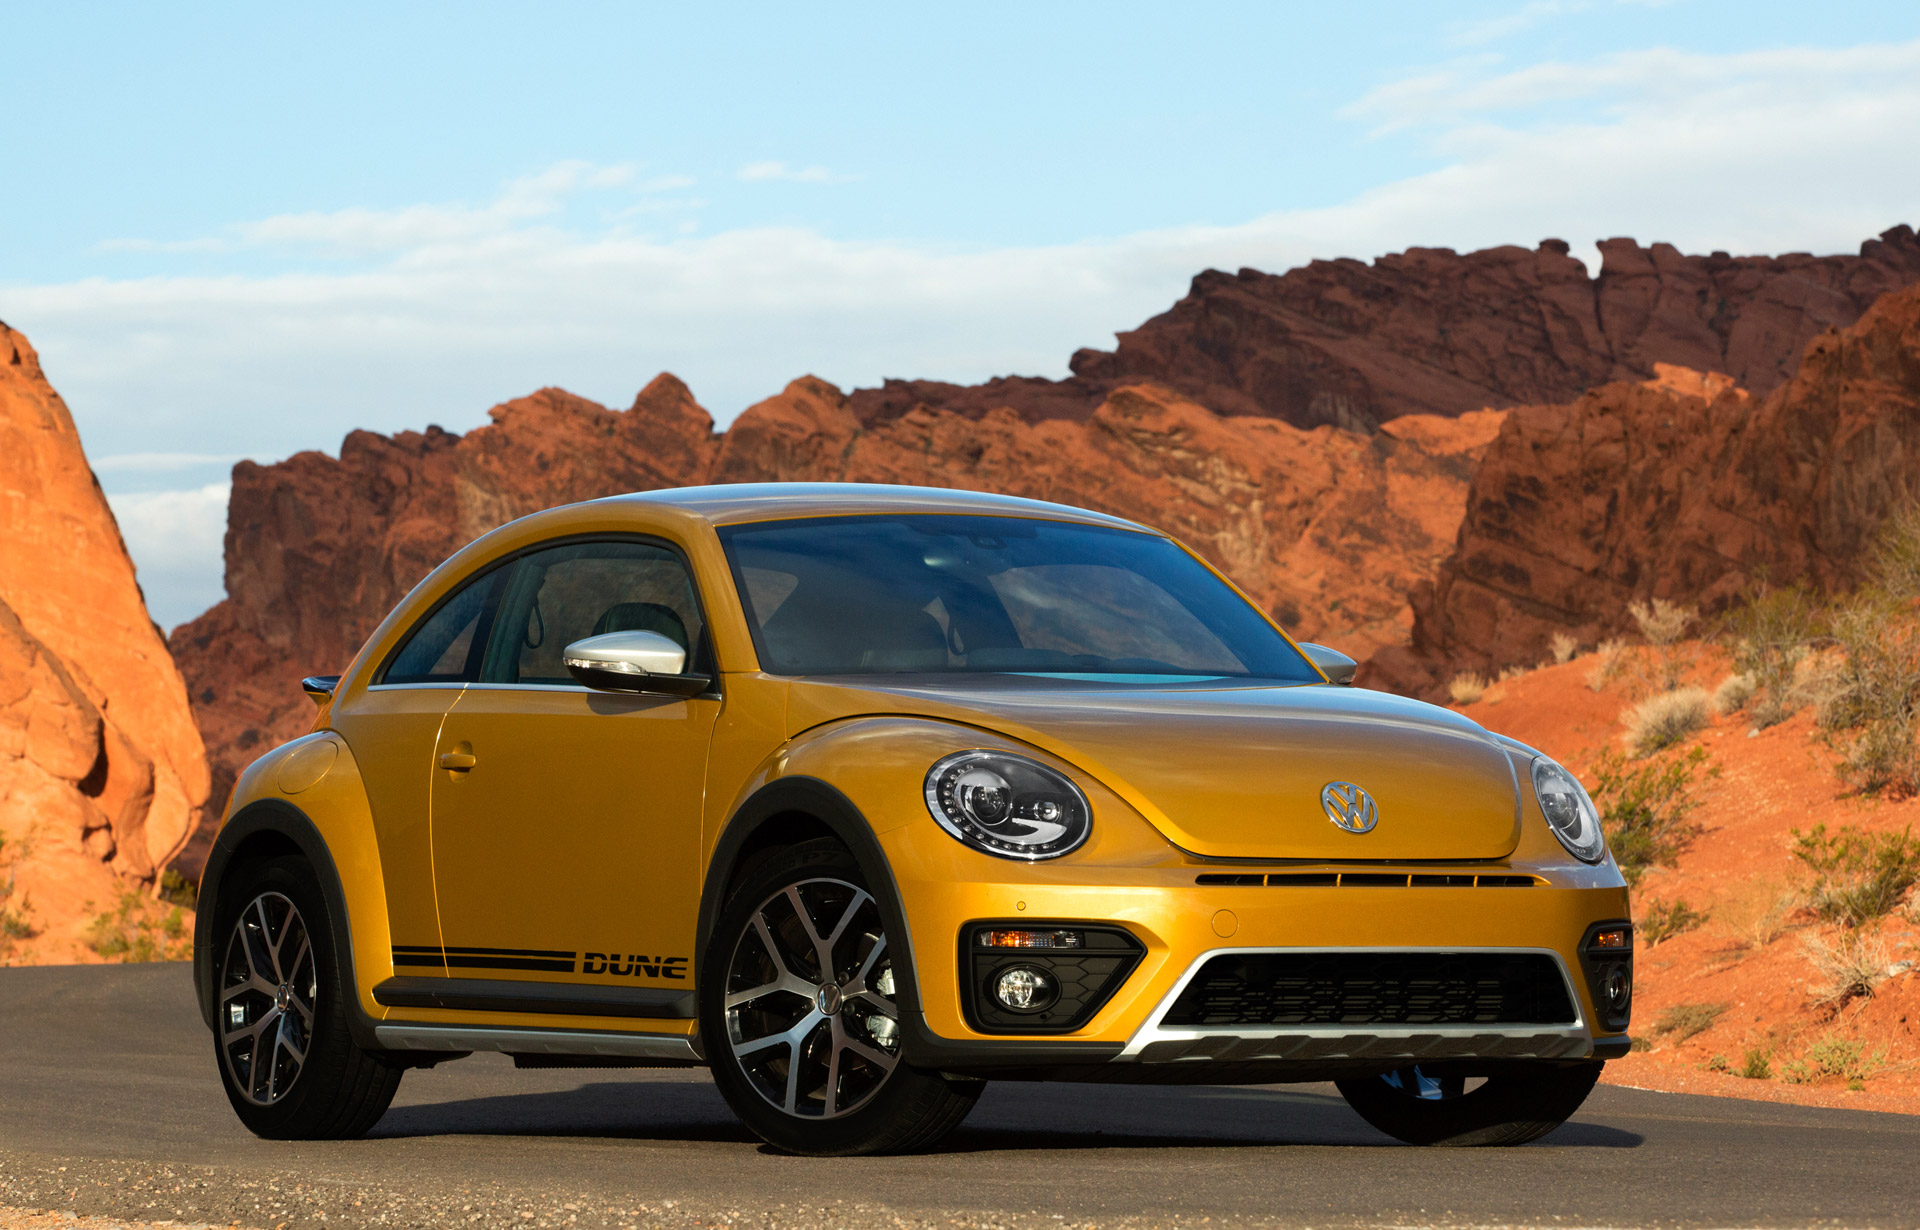 2016 Volkswagen Beetle (VW) Review, Ratings, Specs, Prices, and Photos - The Car Connection